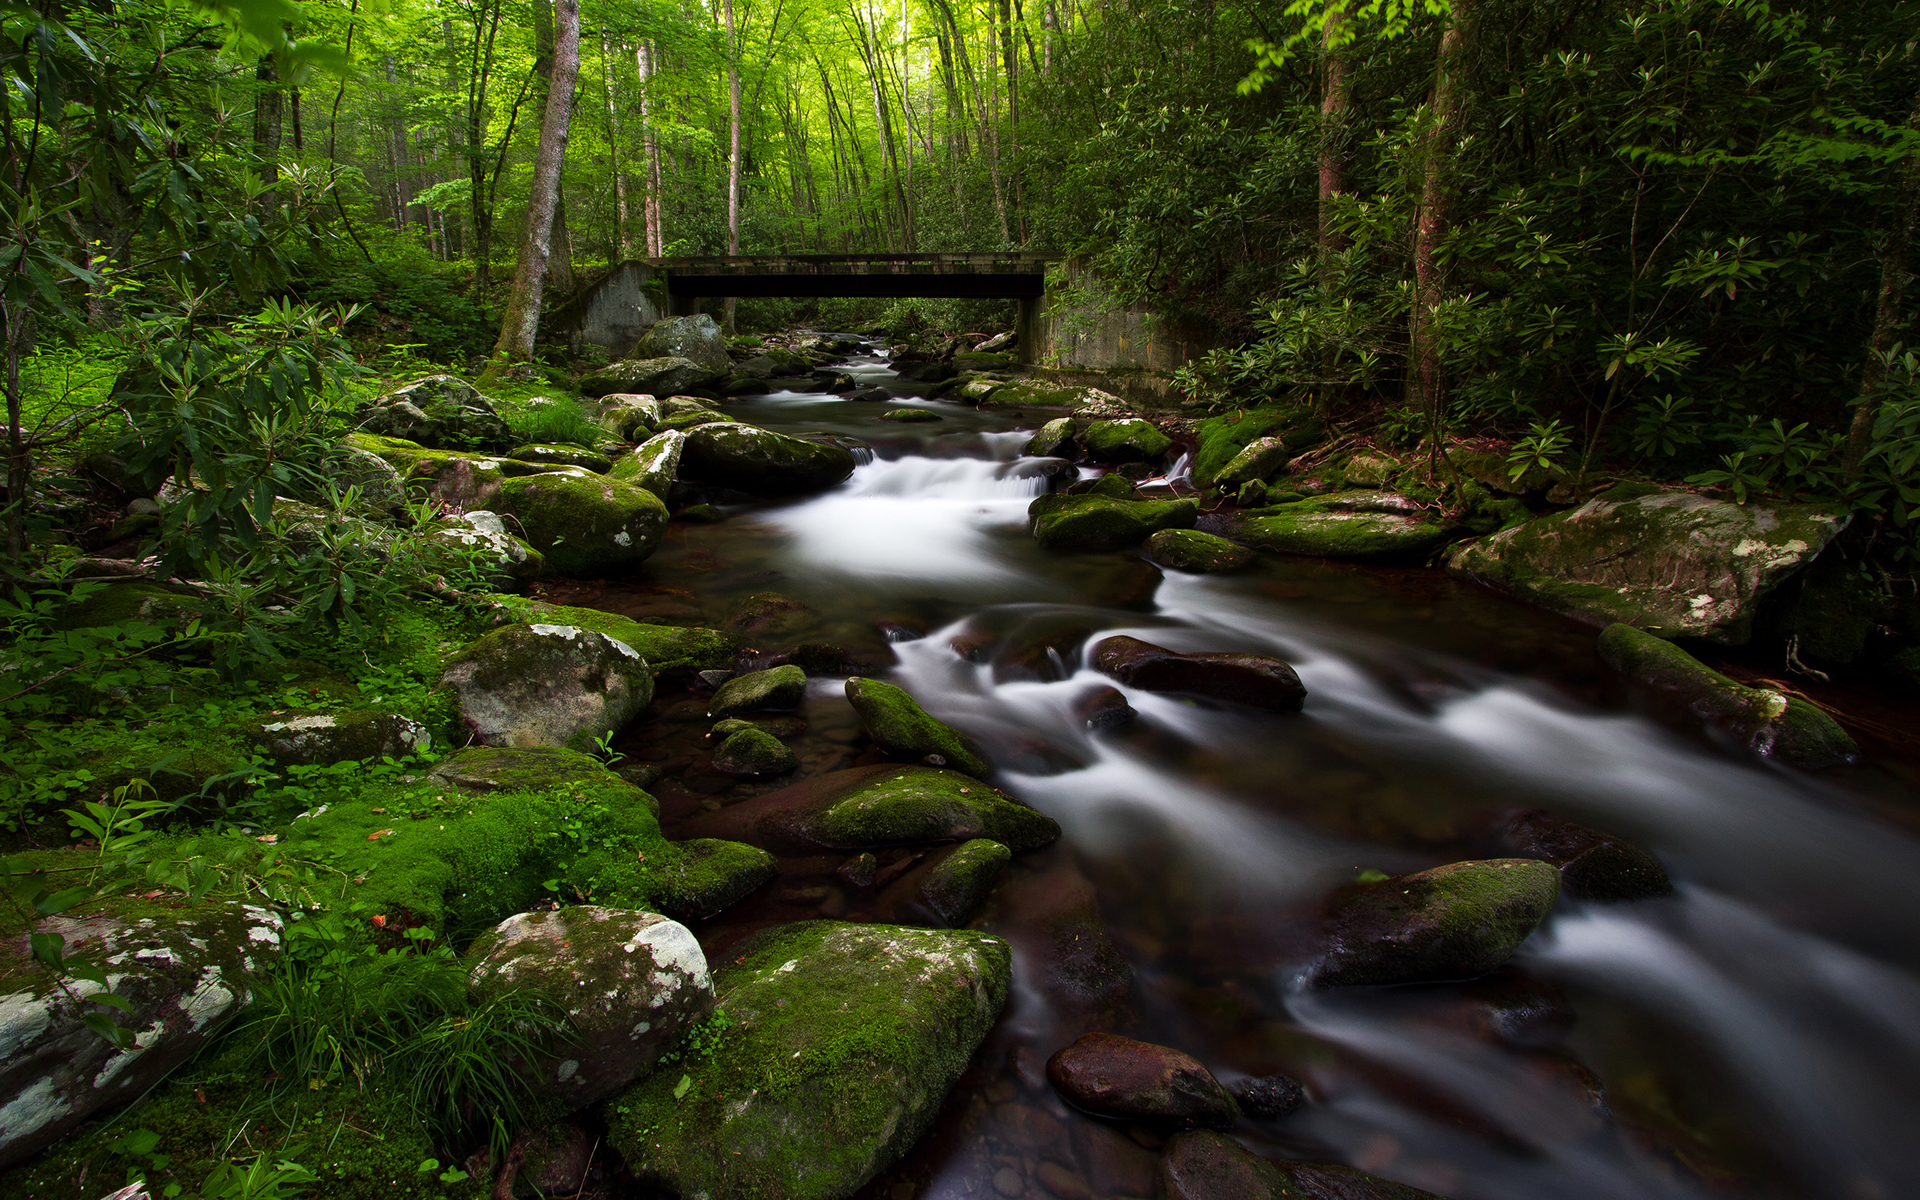 Fern Down United Kingdom  City pictures : Forest Trees Green Stream Bridge Jungle Rocks Stones Moss wallpaper ...